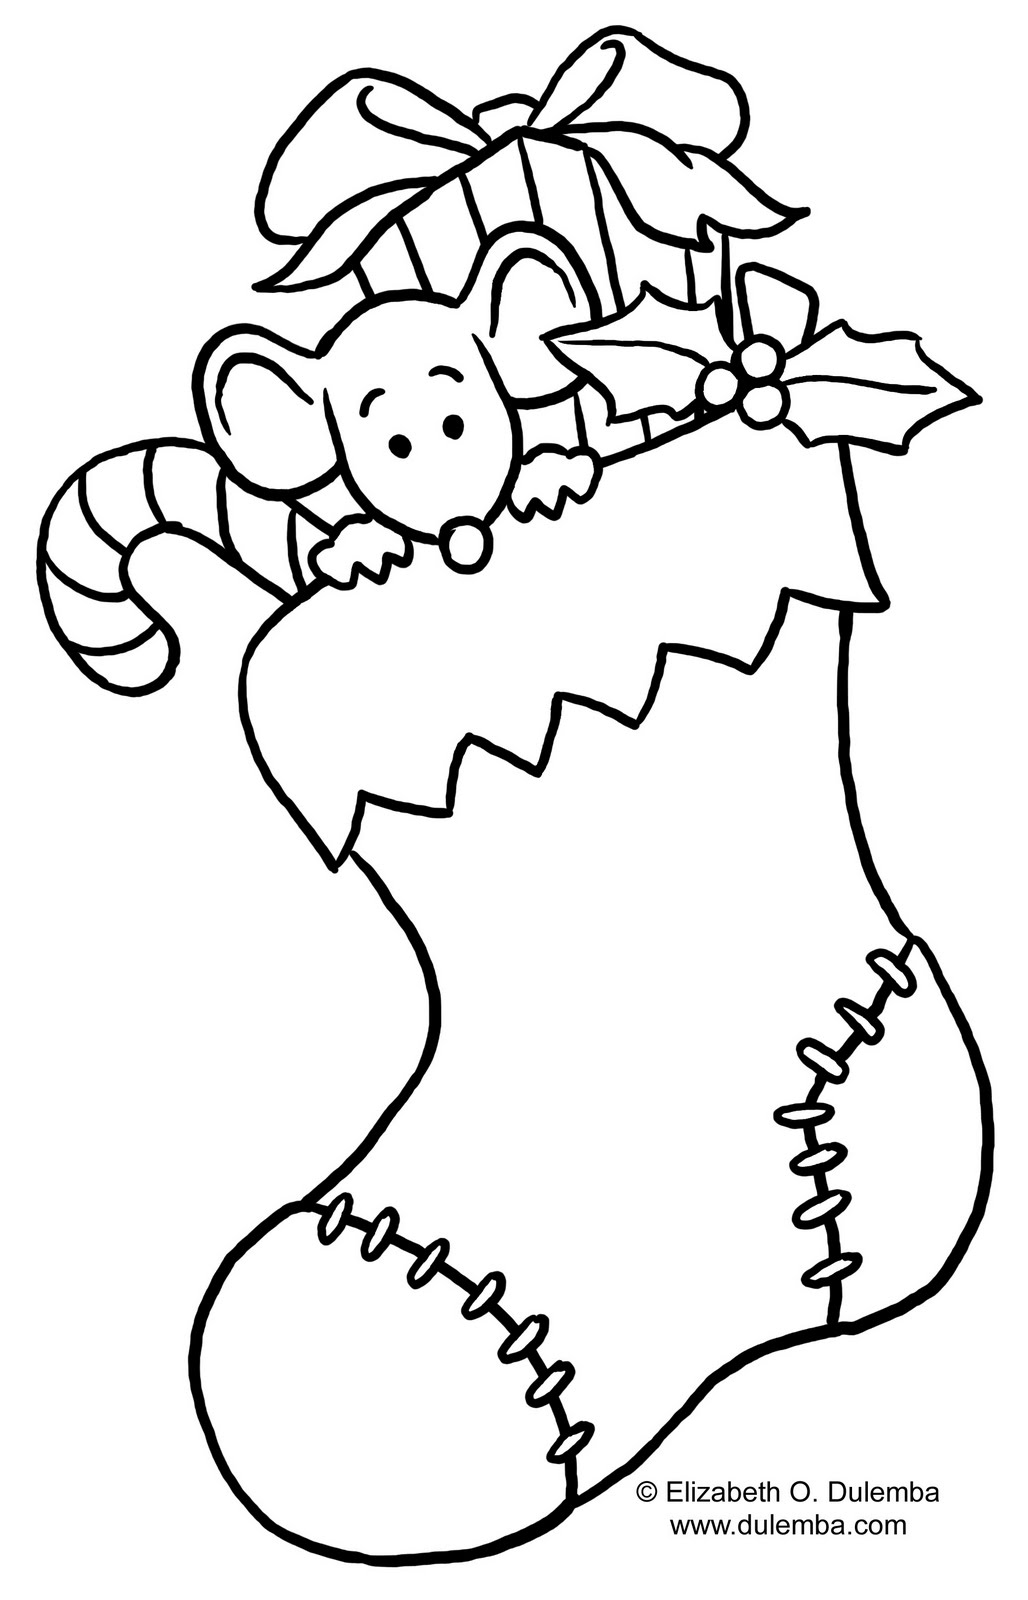 christmas colouring pages for older kids jarvis varnado 15 christmas tree coloring pages for kids kids for colouring pages christmas older